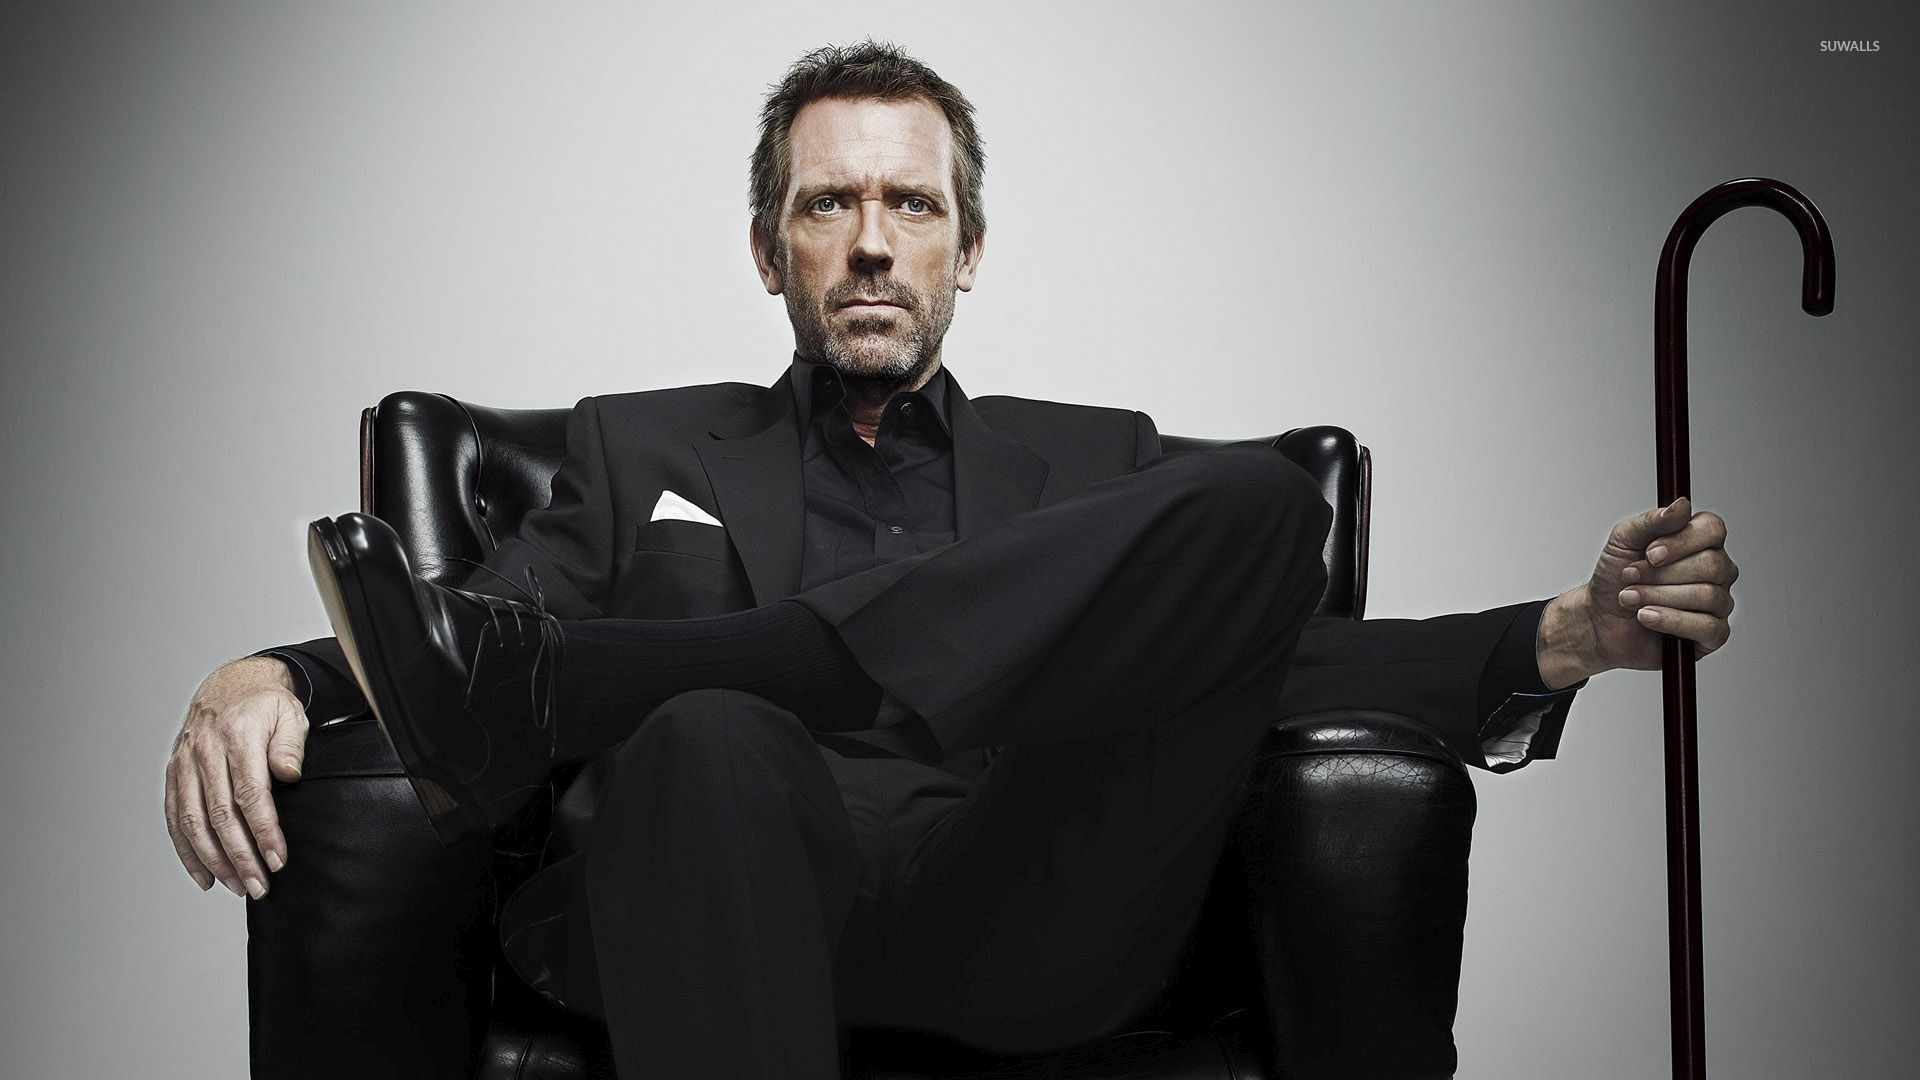 Dr gregory house wallpaper tv show wallpapers 31577 - House of tv show ...